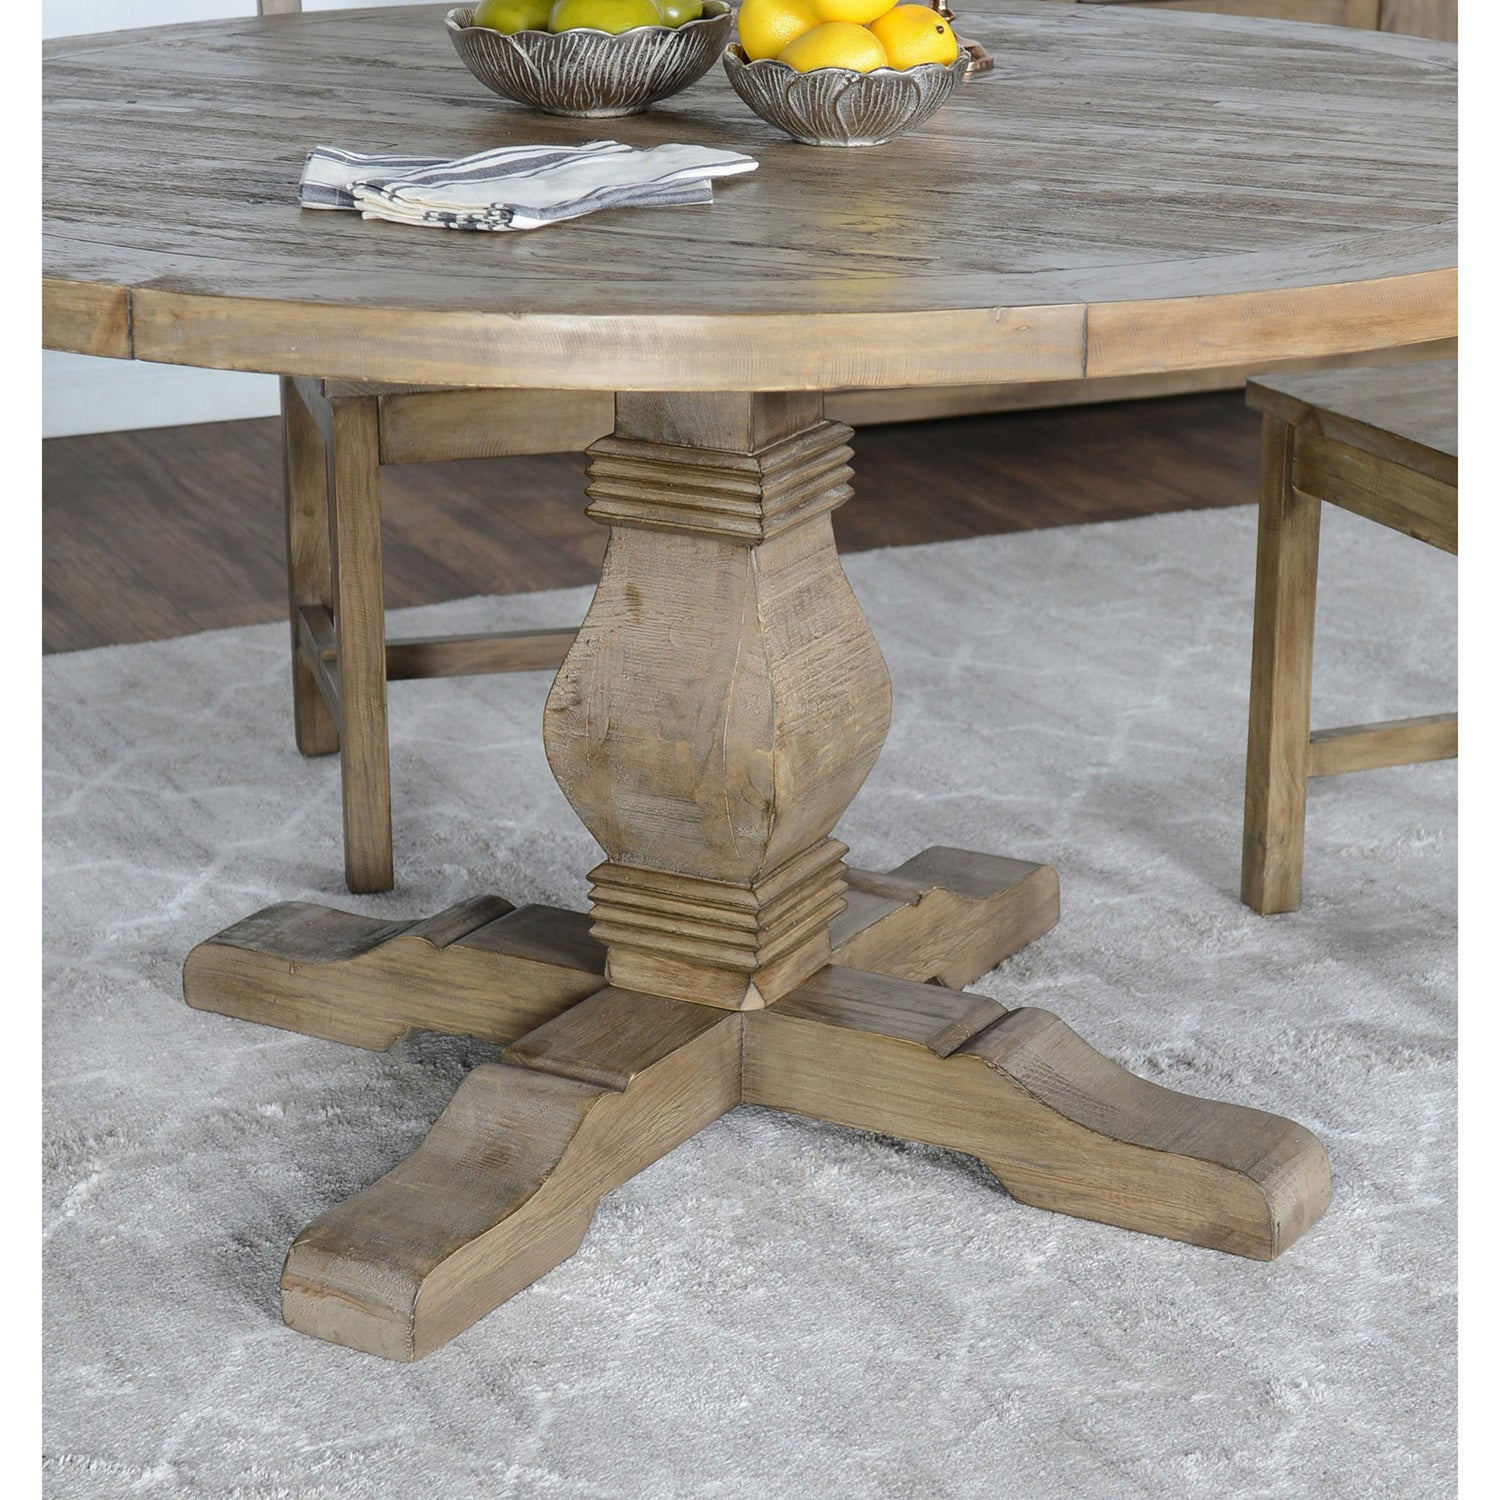 Gentil Shop Kasey Reclaimed Wood 55 Inch Round Dining Table By Kosas Home   Desert  Grey   On Sale   Free Shipping Today   Overstock.com   11319990